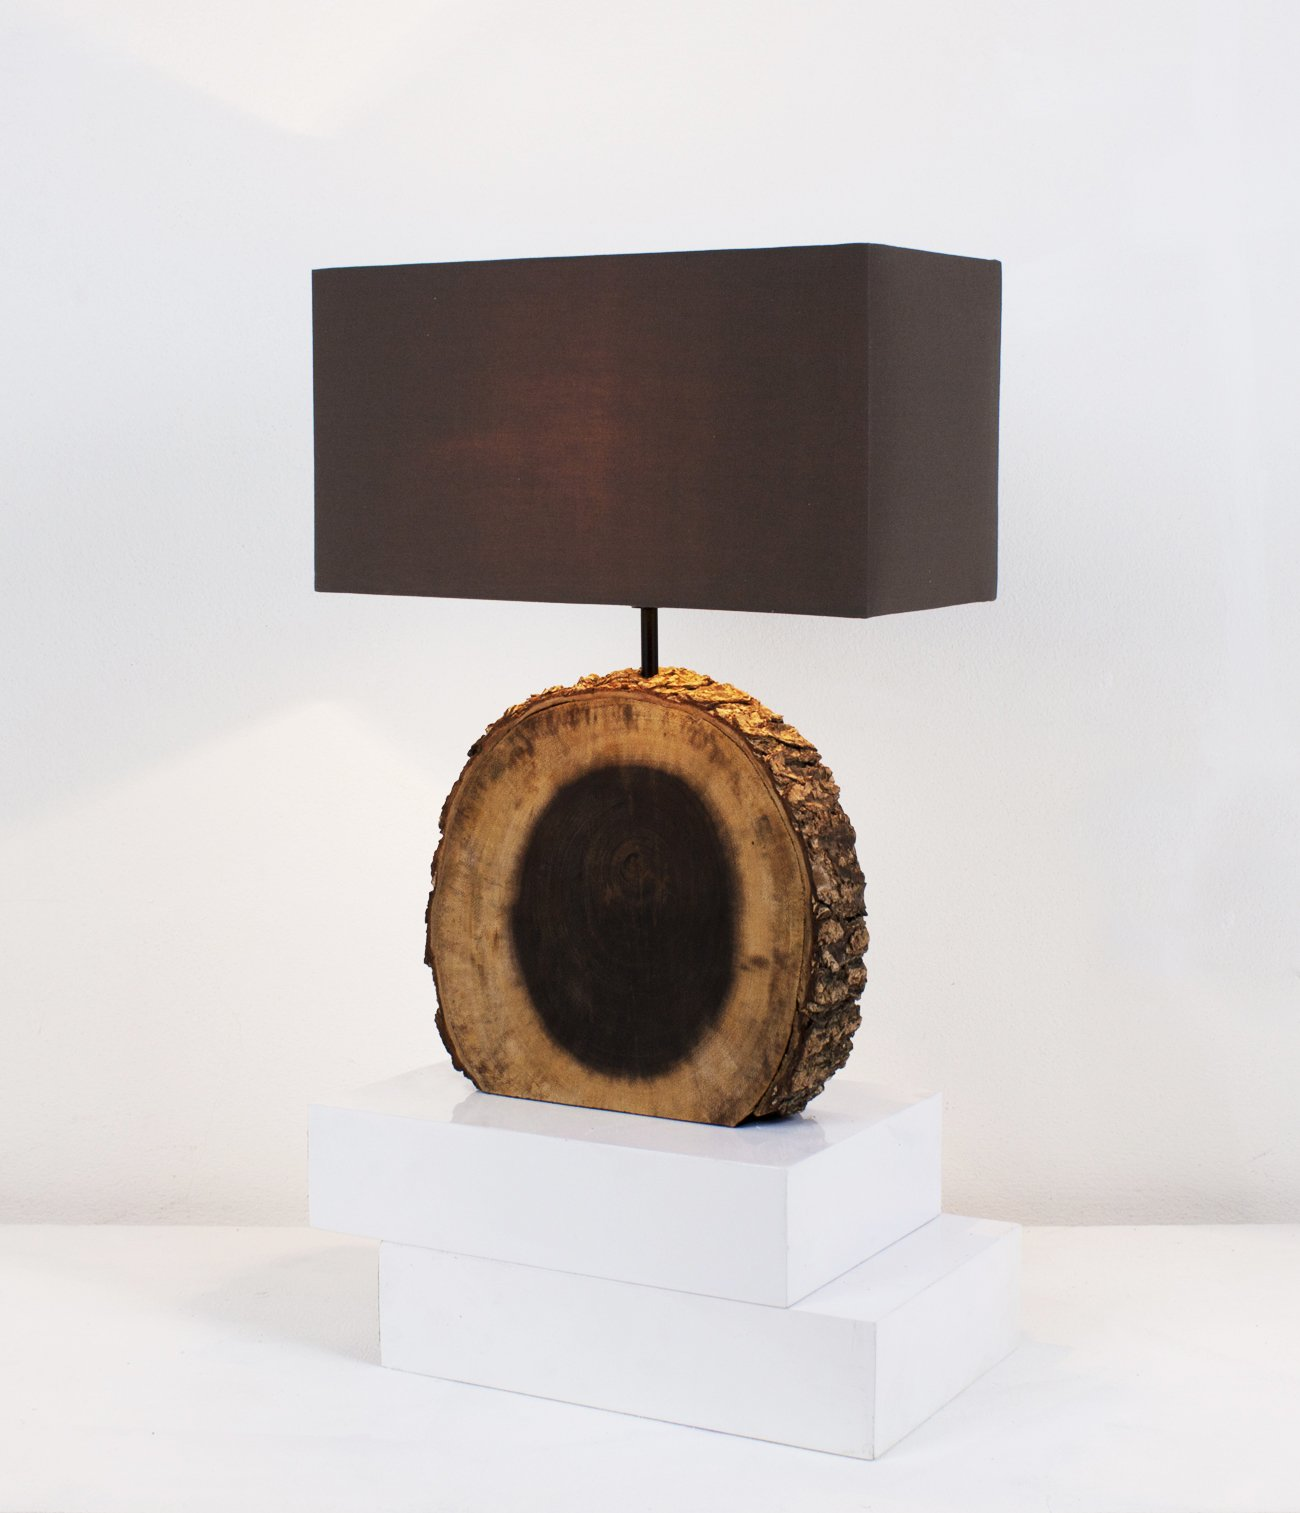 NPD O'THENTIQUE Rustic Tree Bark Table Lamp | Earthy Unfinished Natural Wood | Brown Shade Perfect as Entry Table Lamp, Sofa Table Lamp for Beach House, Cottage, Cabin, Bedroom, Living Room Decor by O'THENTIQUE